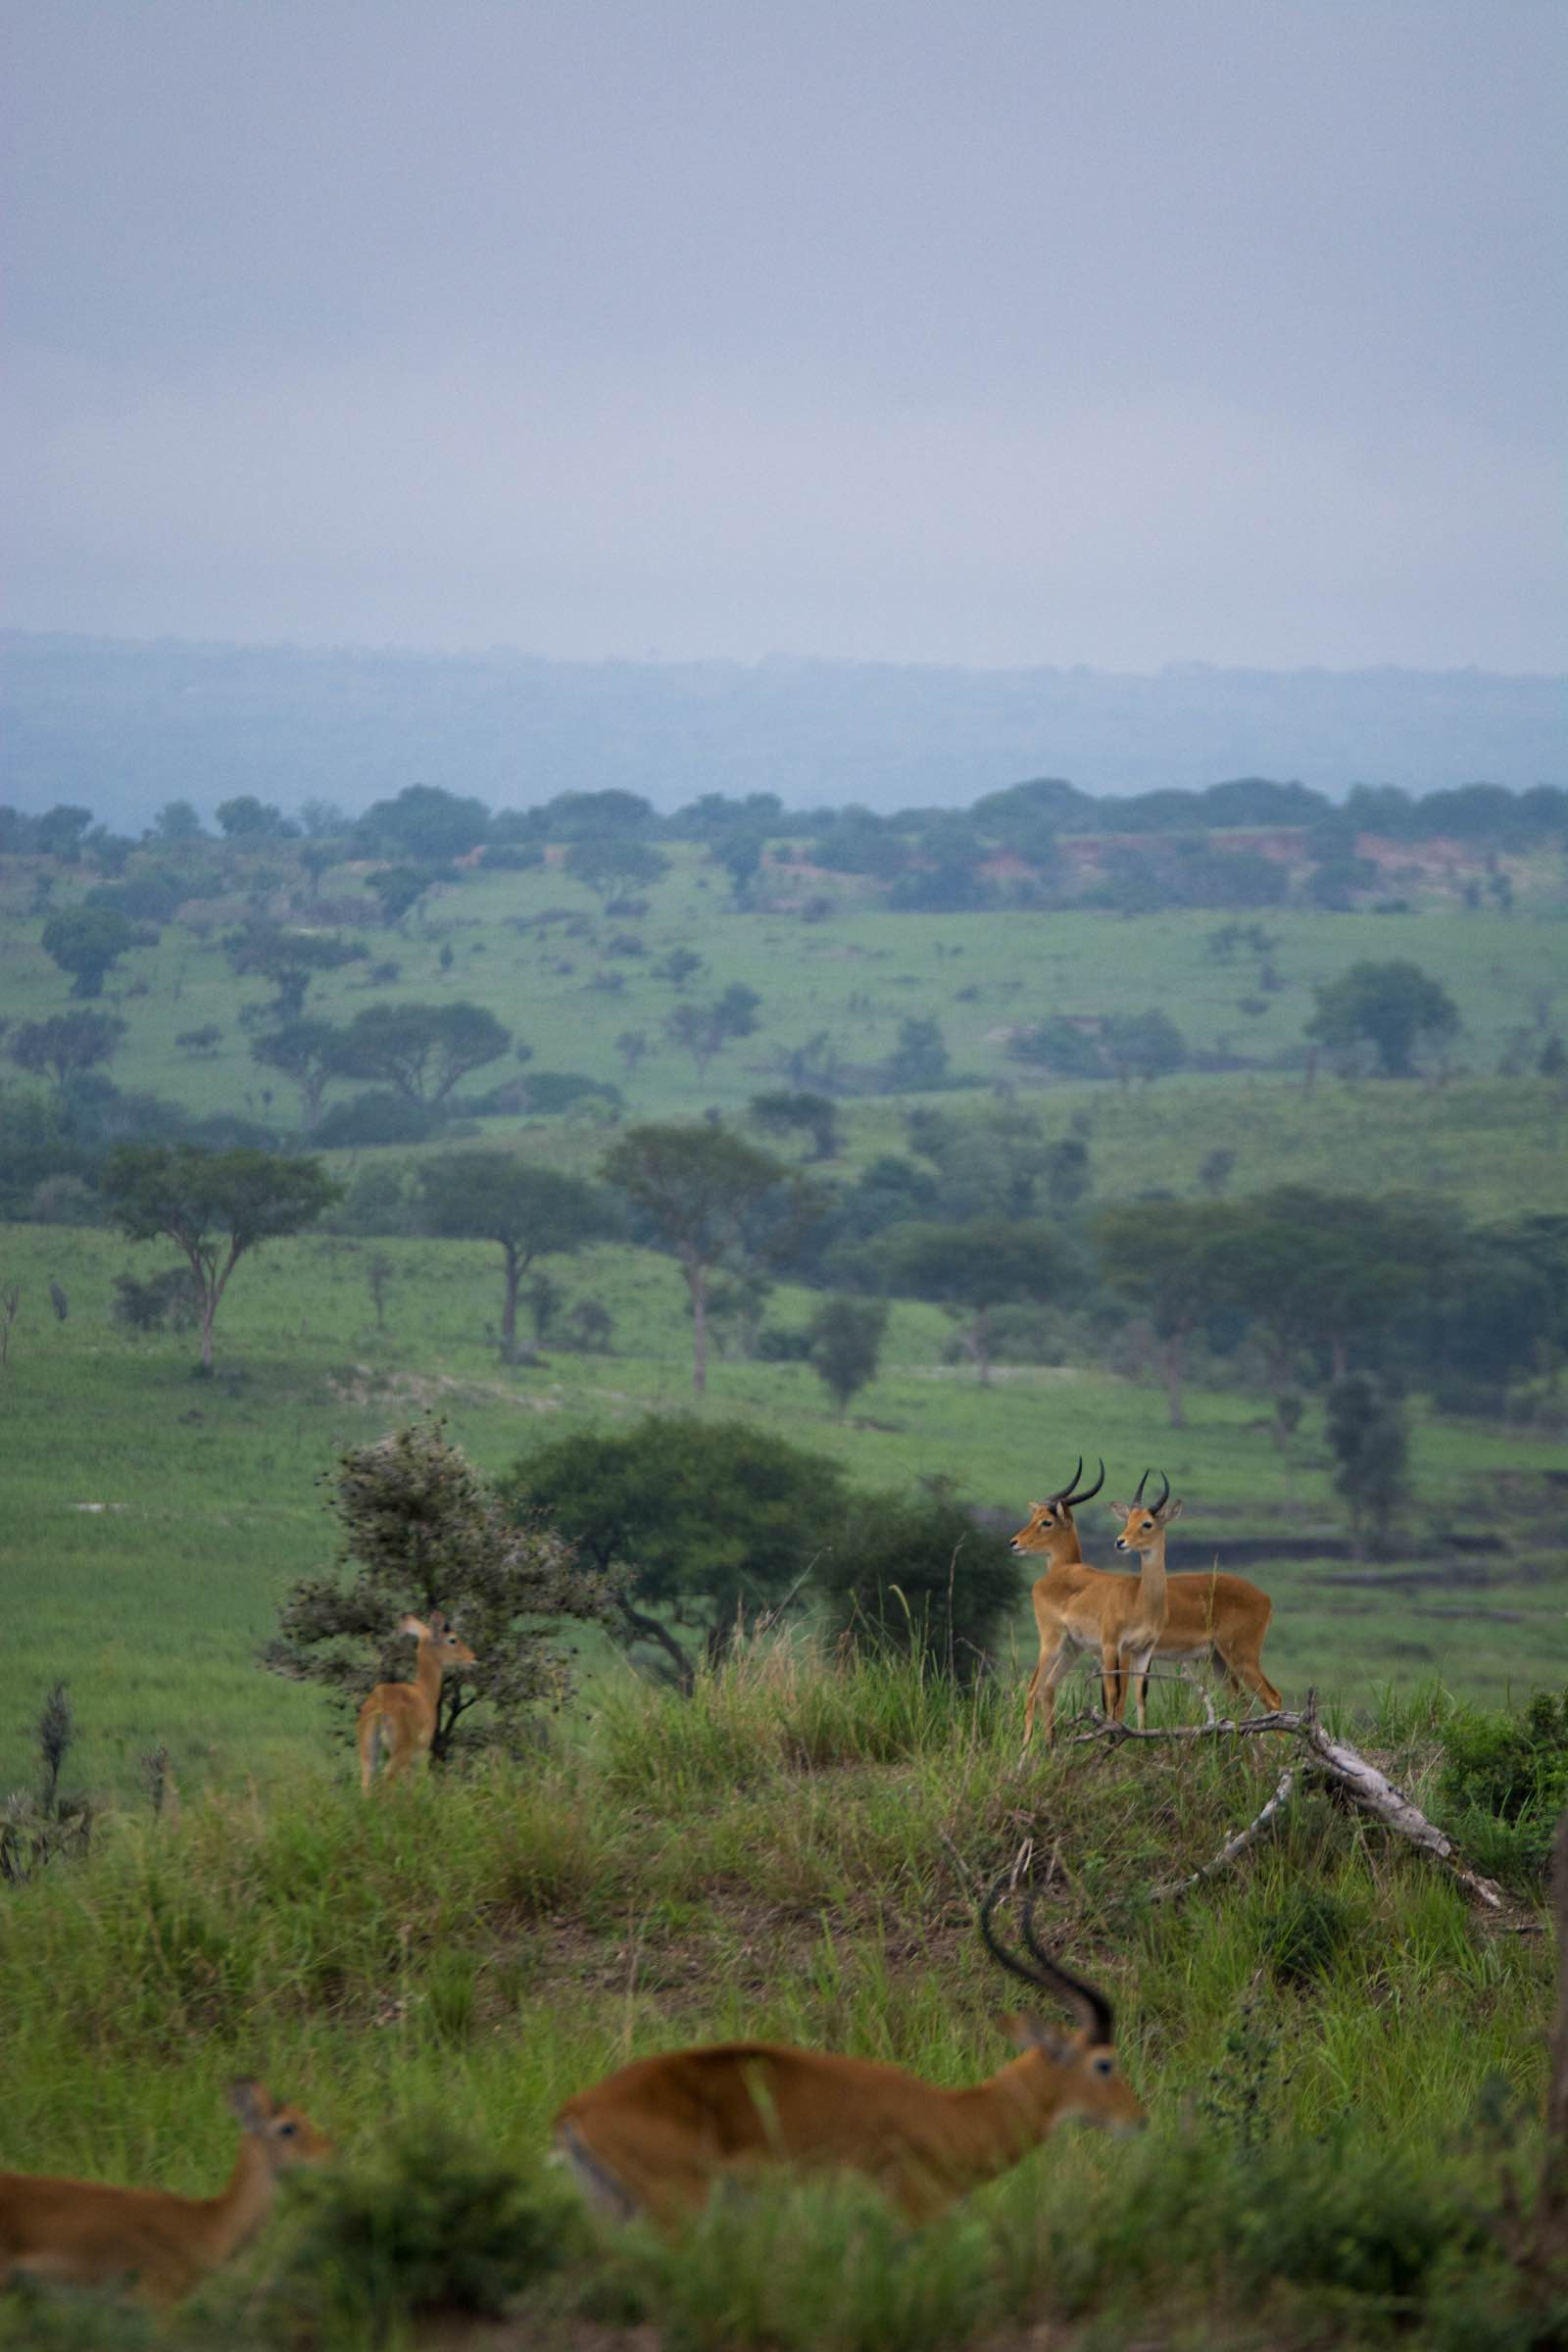 Incredible landscapes of Murchison Falls National Park with the iconic Ugandan kob on the lookout